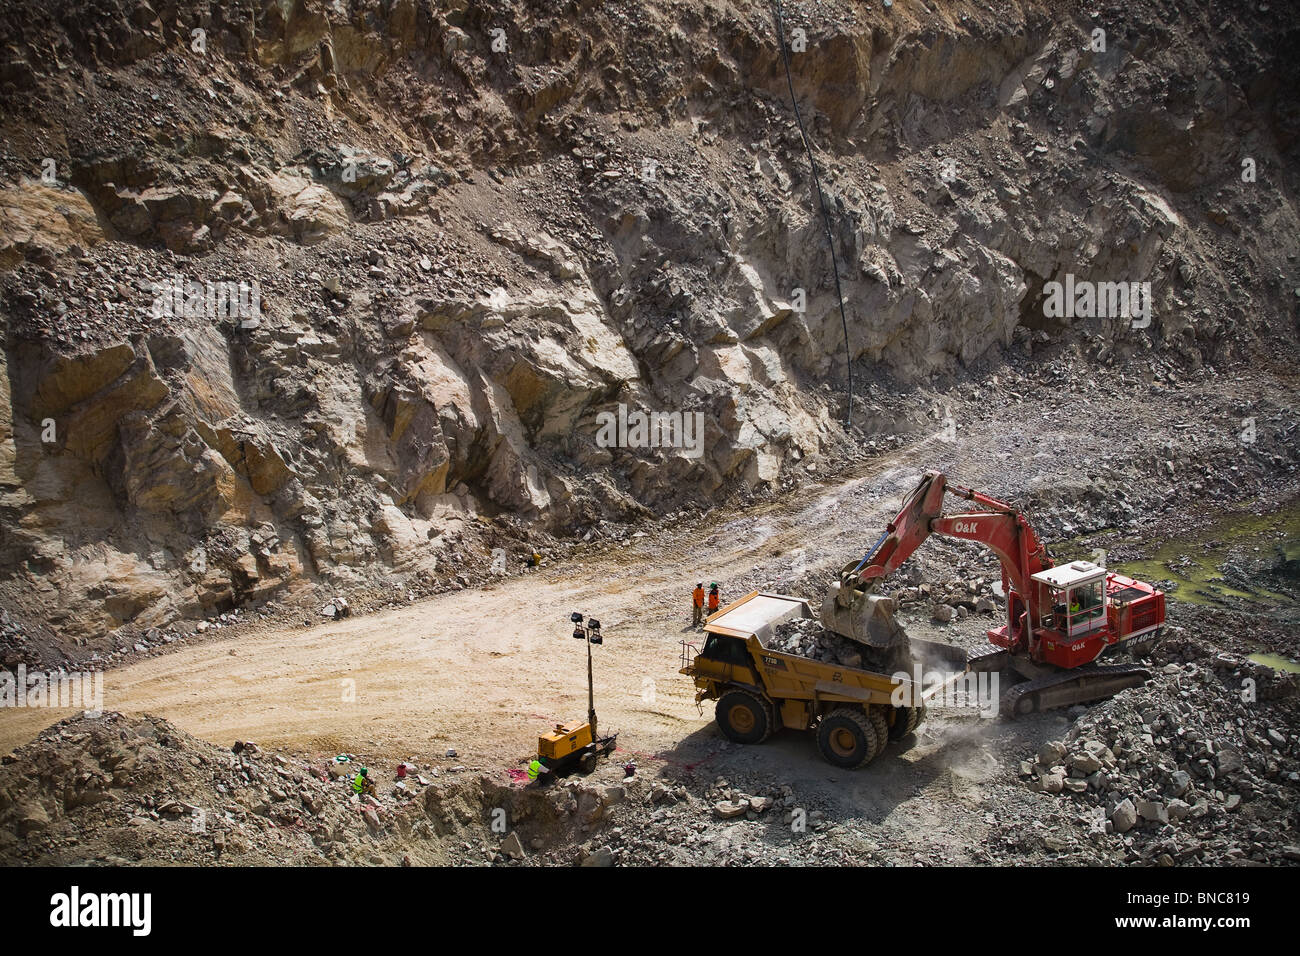 An excavator loads a large truck with ore in a pit of the Youga gold mine near the town of Youga, Burkina Faso - Stock Image